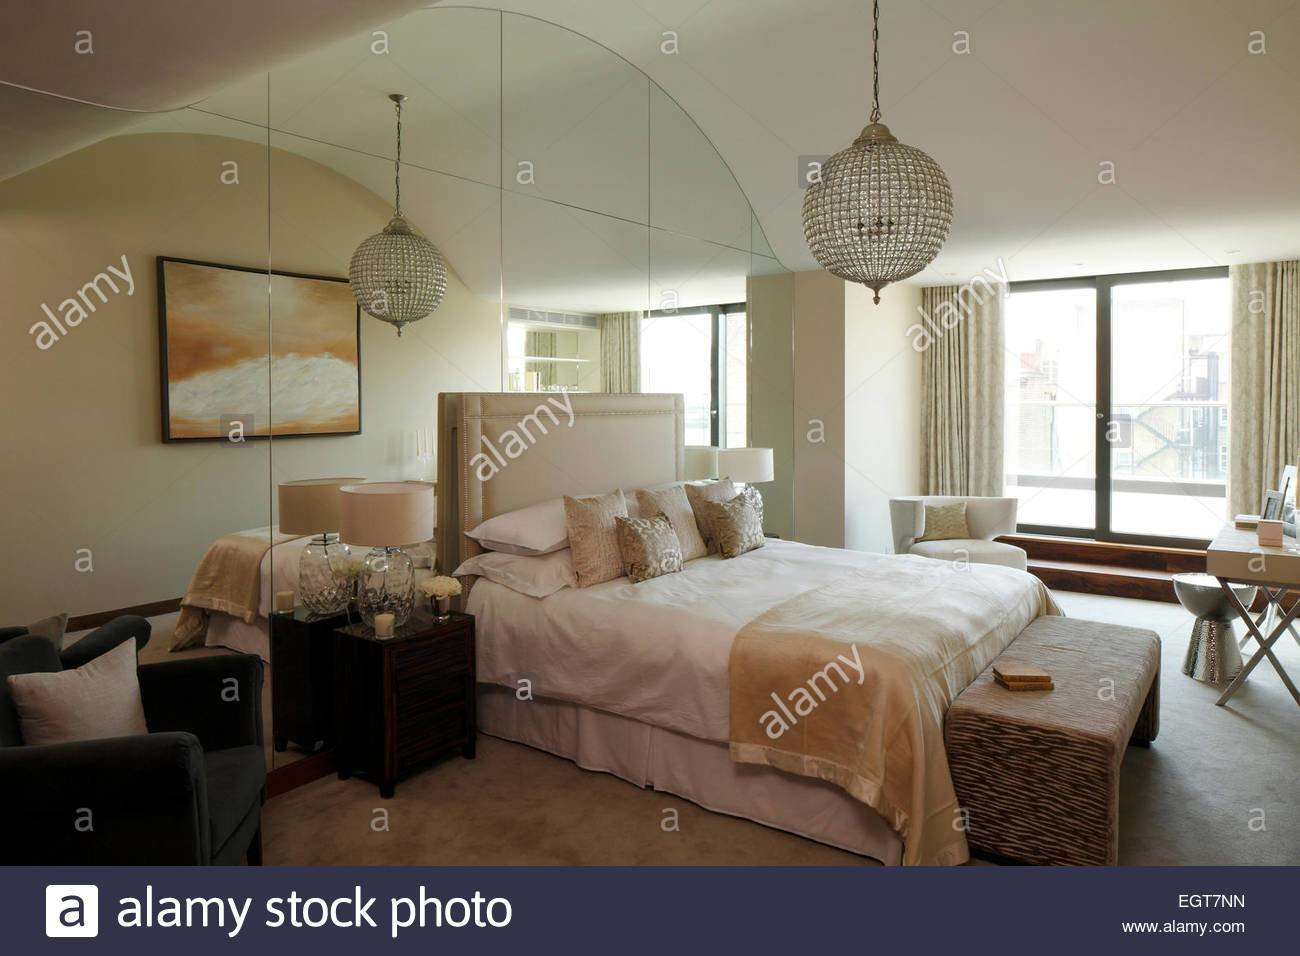 Best Mirrored Ceiling Stock Photos Mirrored Ceiling Stock With Pictures